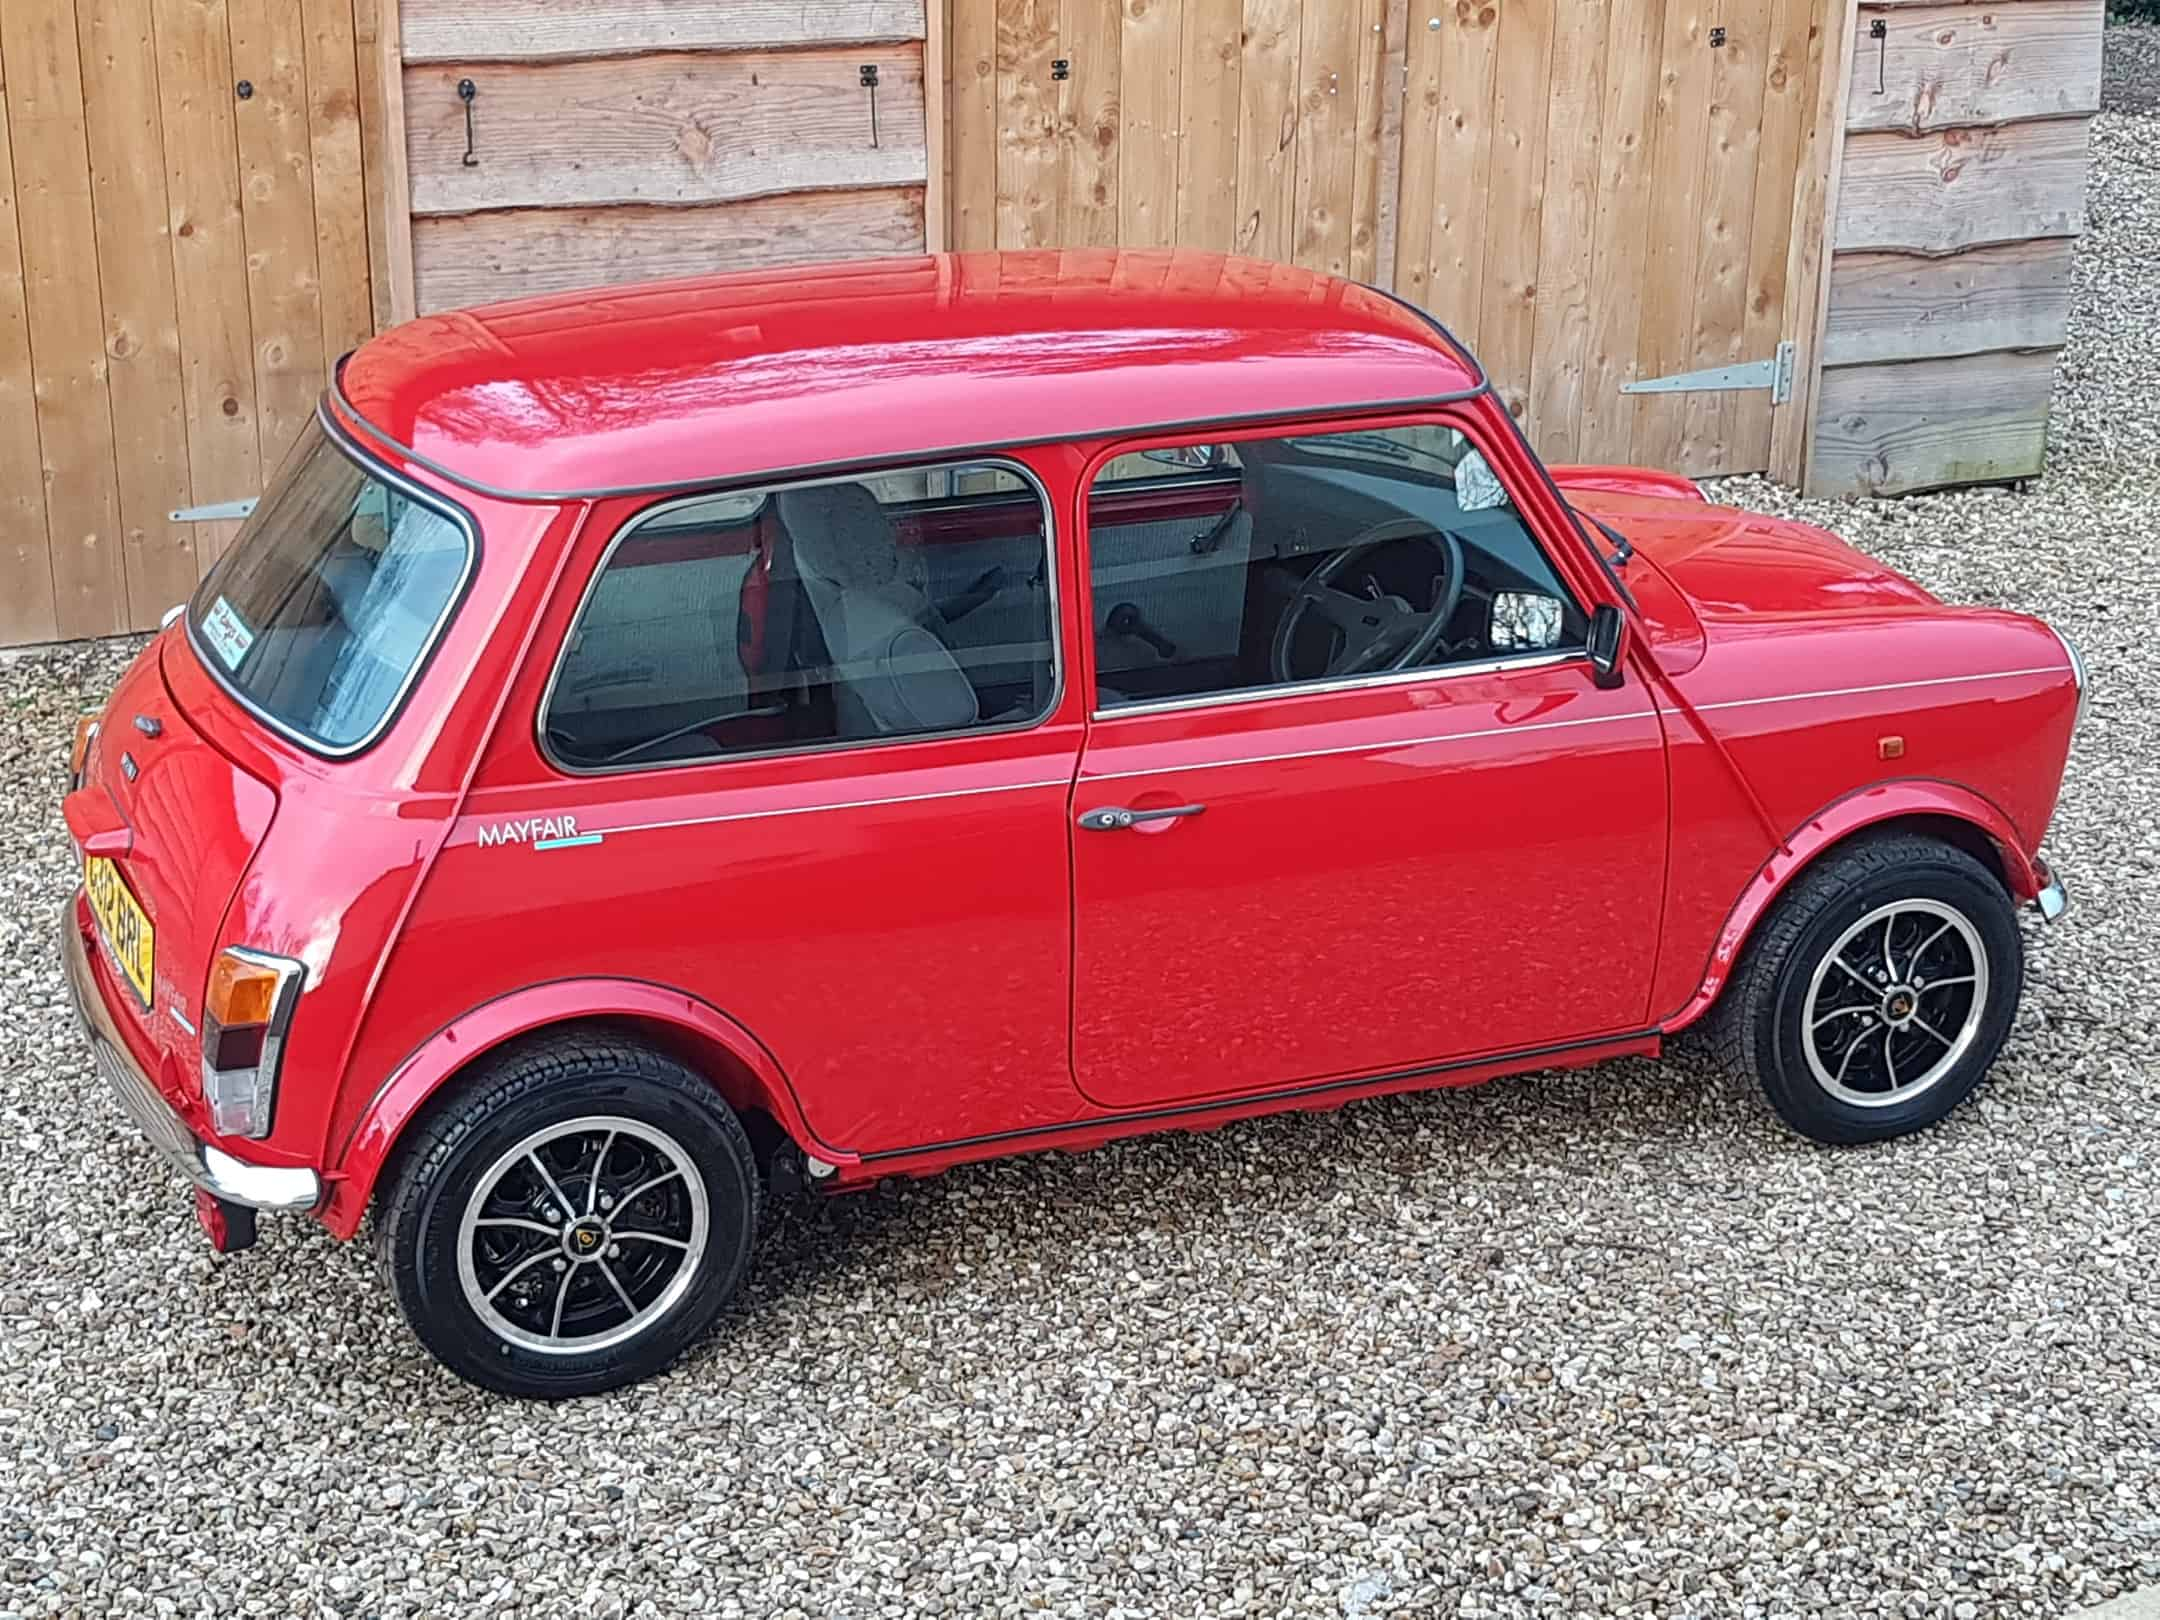 Immaculate 1990 Mini Mayfair On Just 23800 Miles In 31 Years.